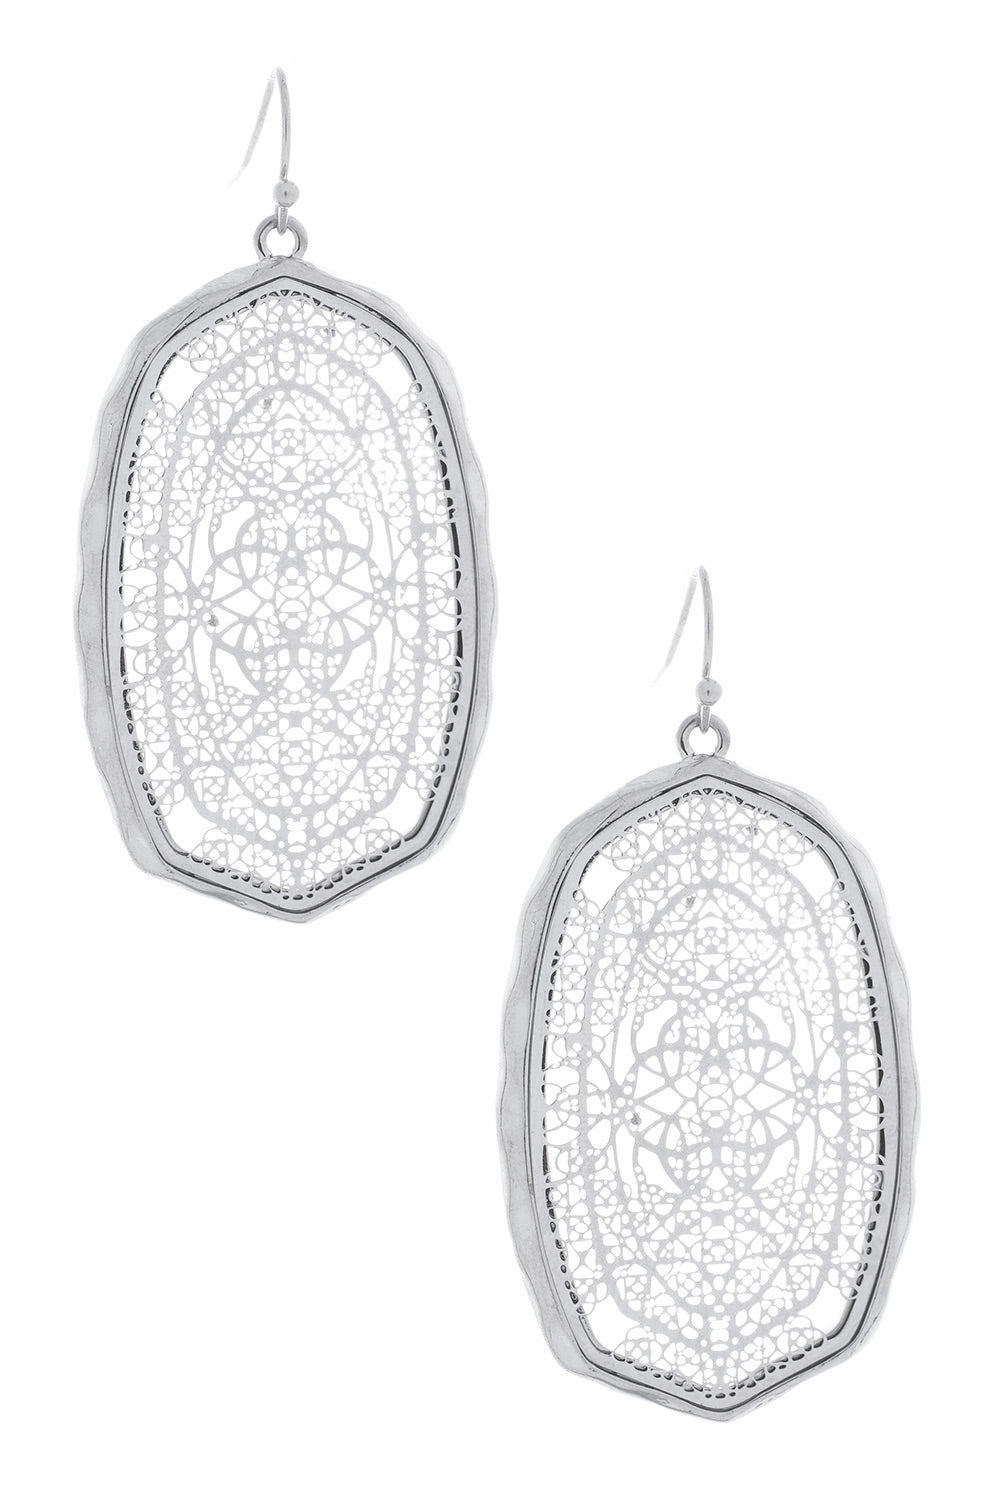 Type 2 Framed Lace Earrings